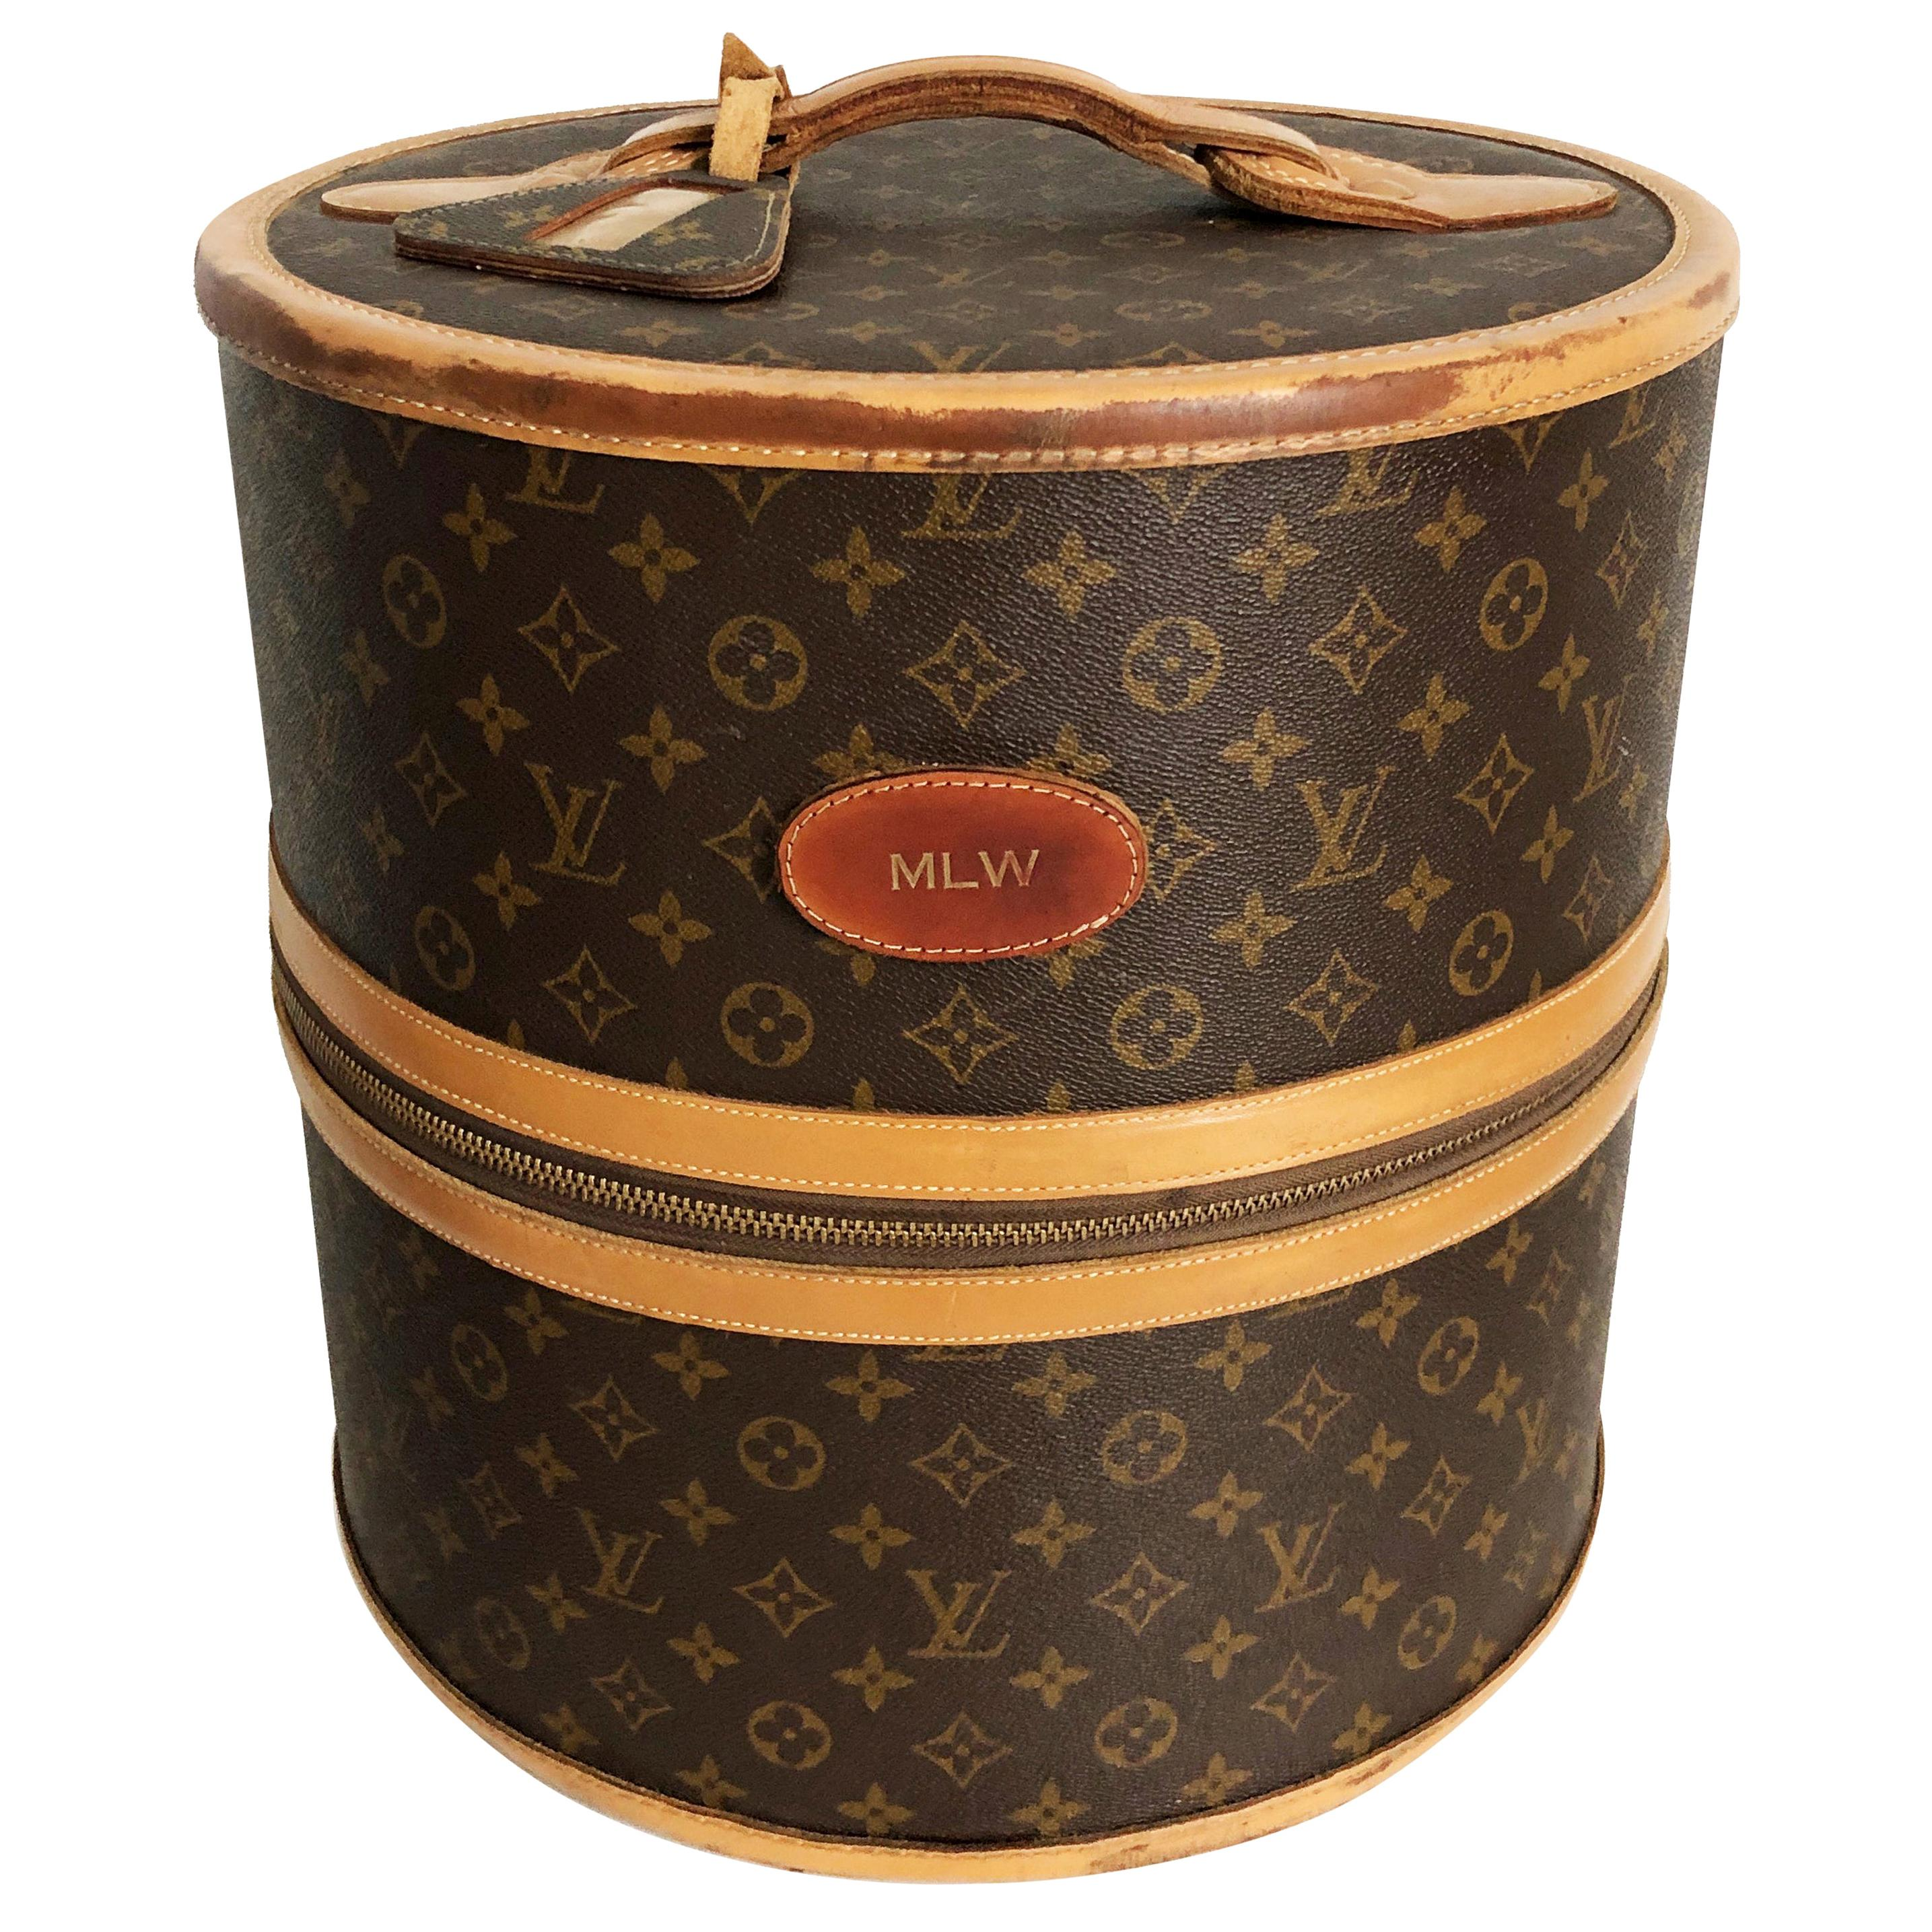 Louis Vuitton French Company Monogram Round Hat Box Wig Case Travel Bag 1970s